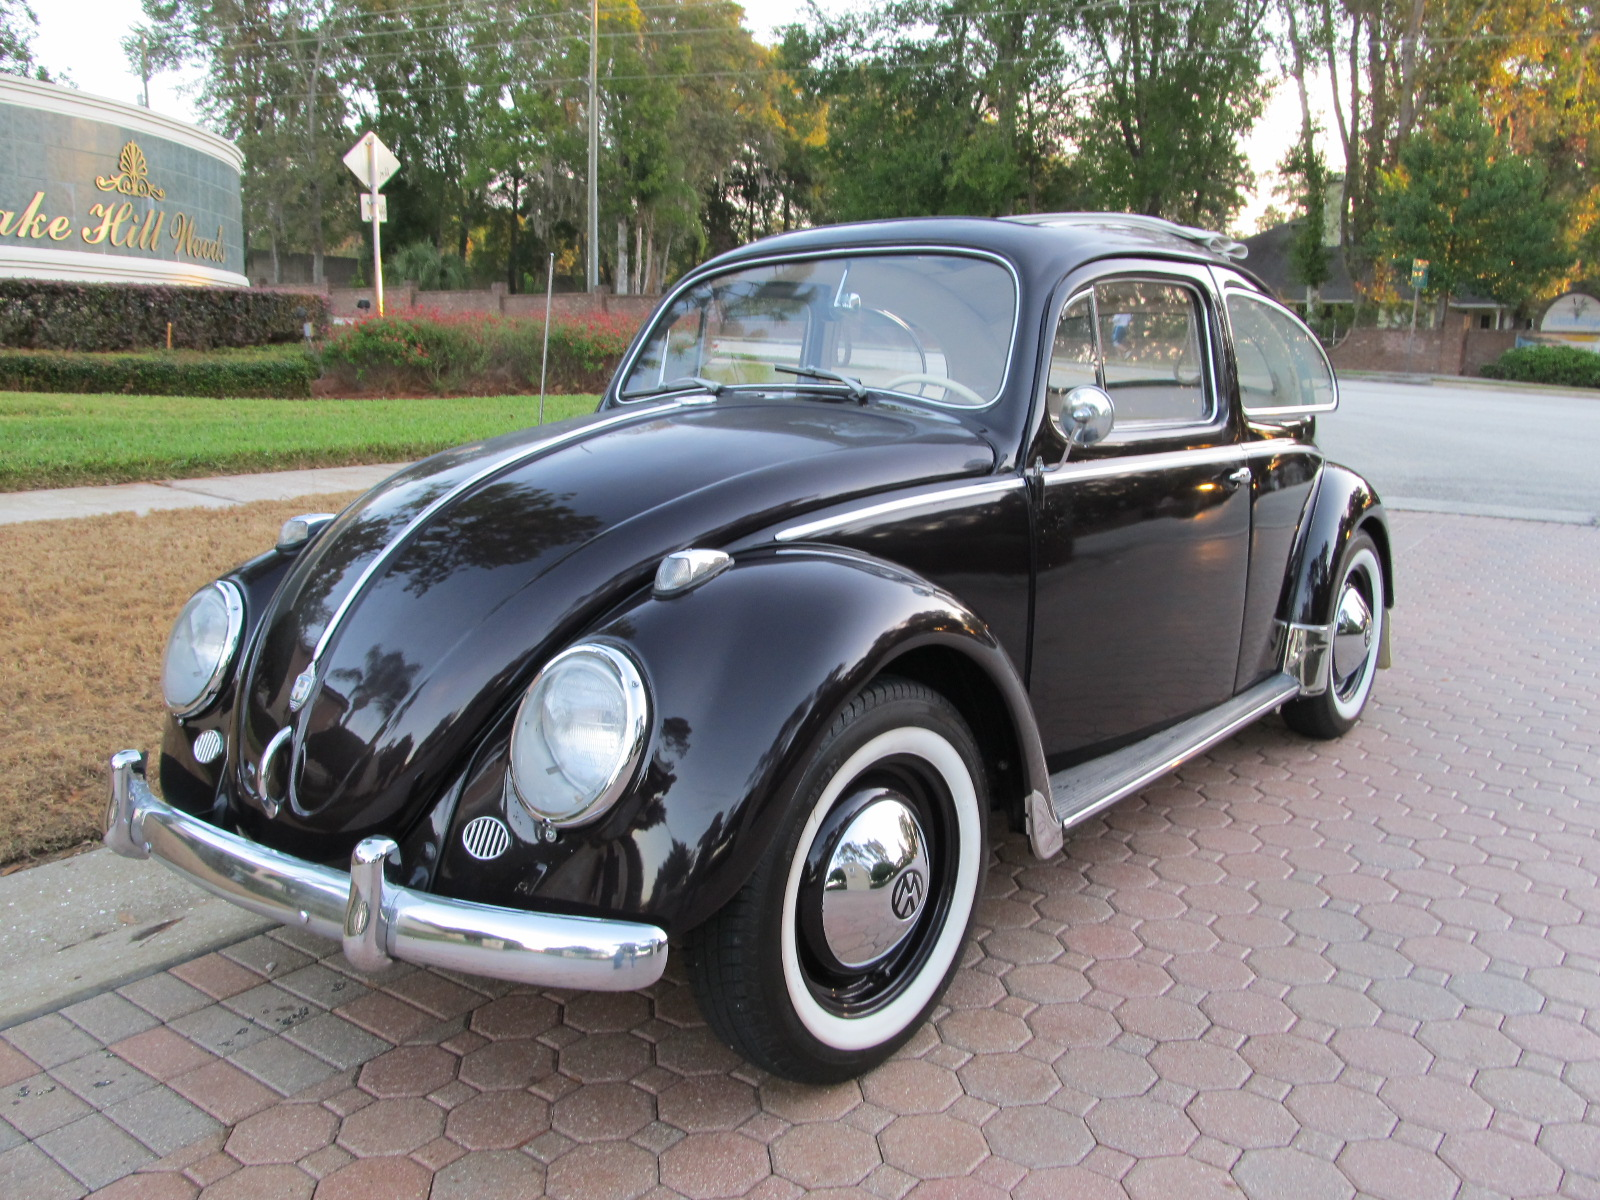 1958 Volkswagen Beetle Ragtop - SOLD! - Vantage Sports Cars | Vantage Sports Cars